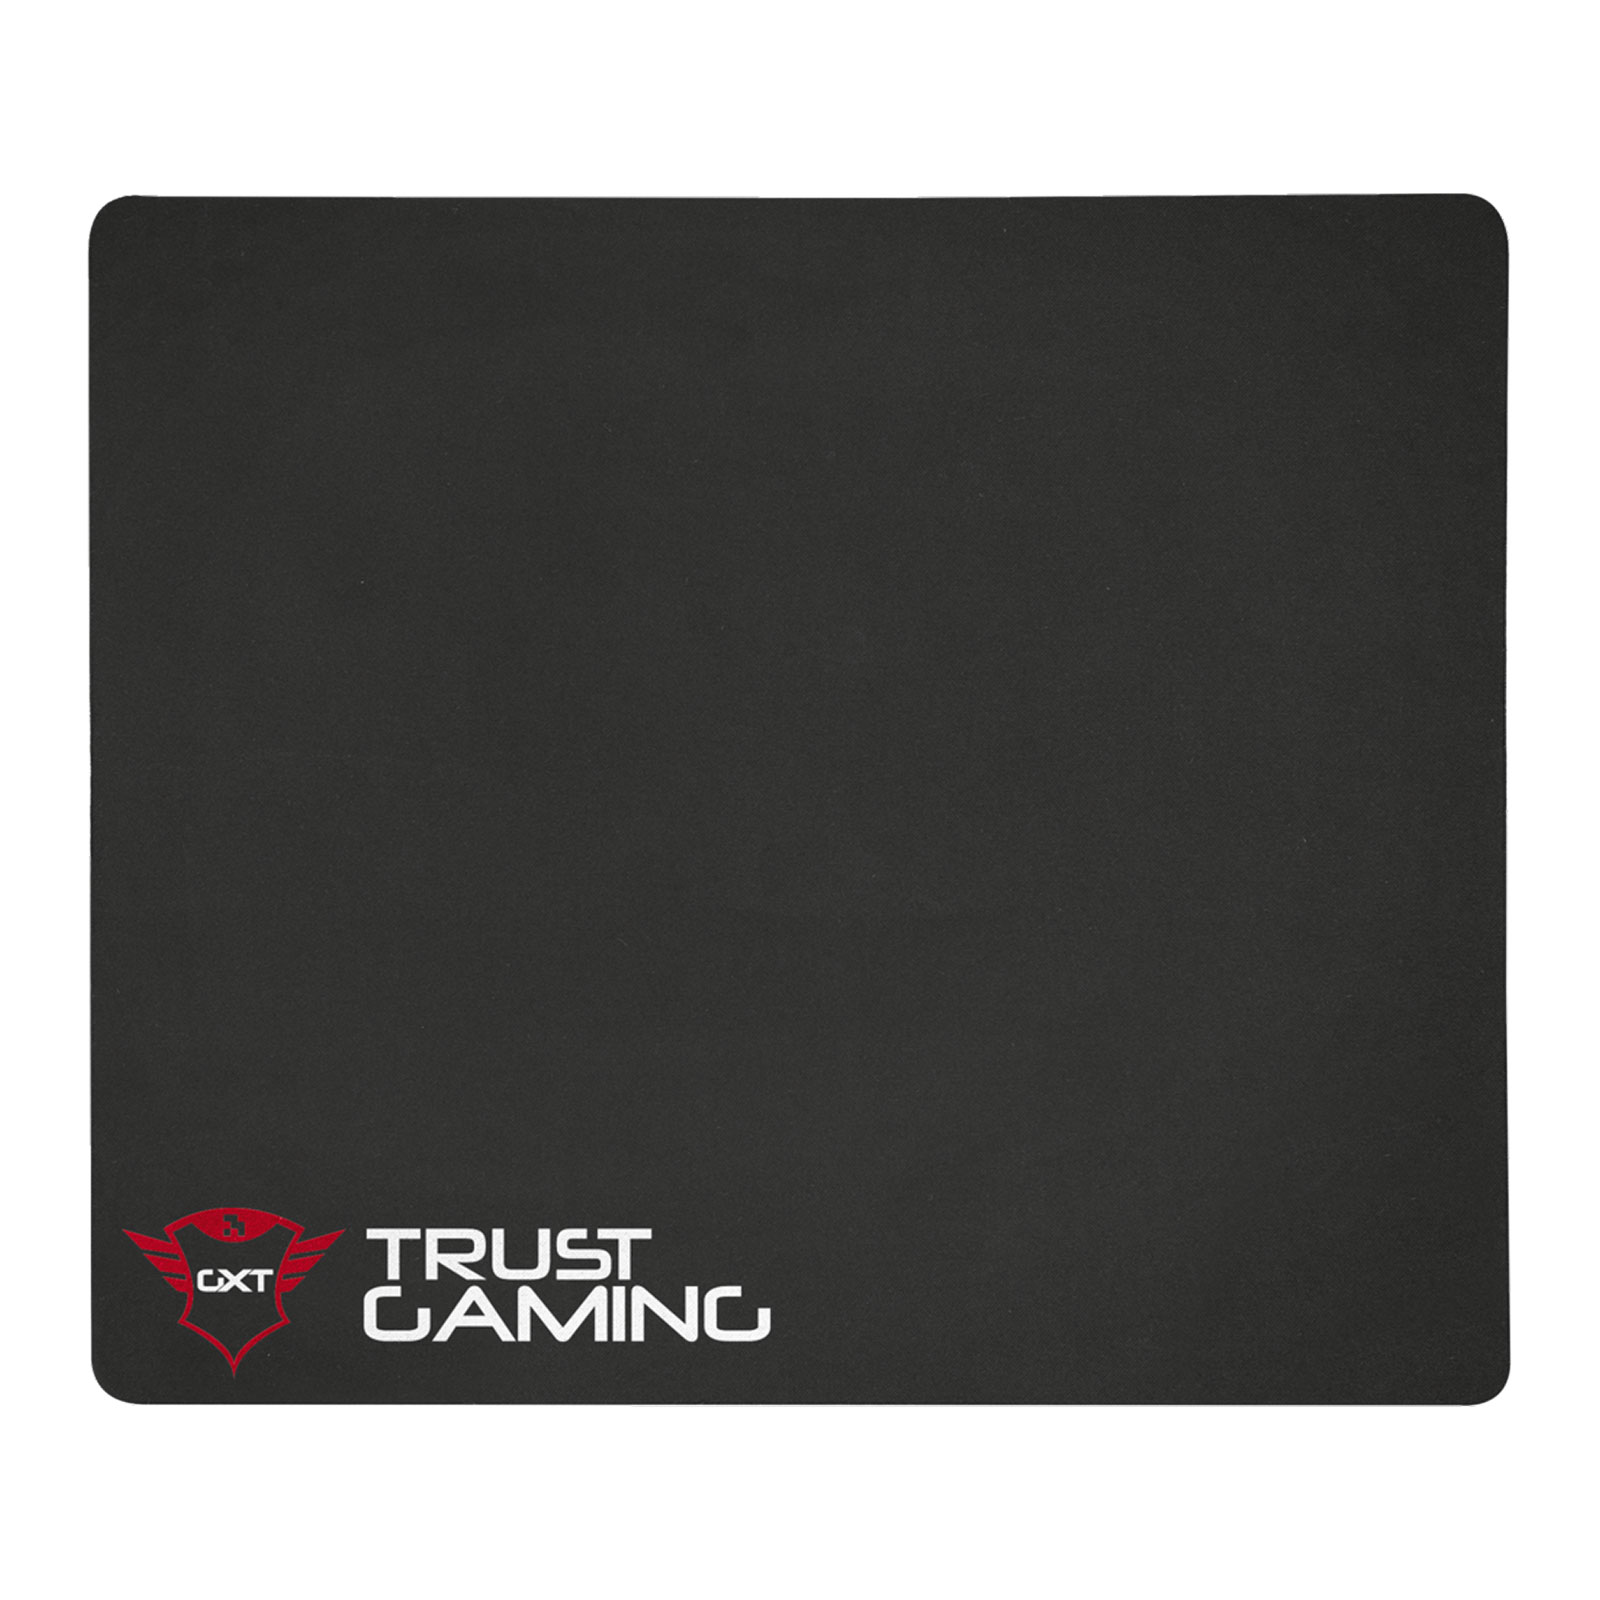 trust gaming gxt 202 tapis de souris trust gaming sur ldlc. Black Bedroom Furniture Sets. Home Design Ideas